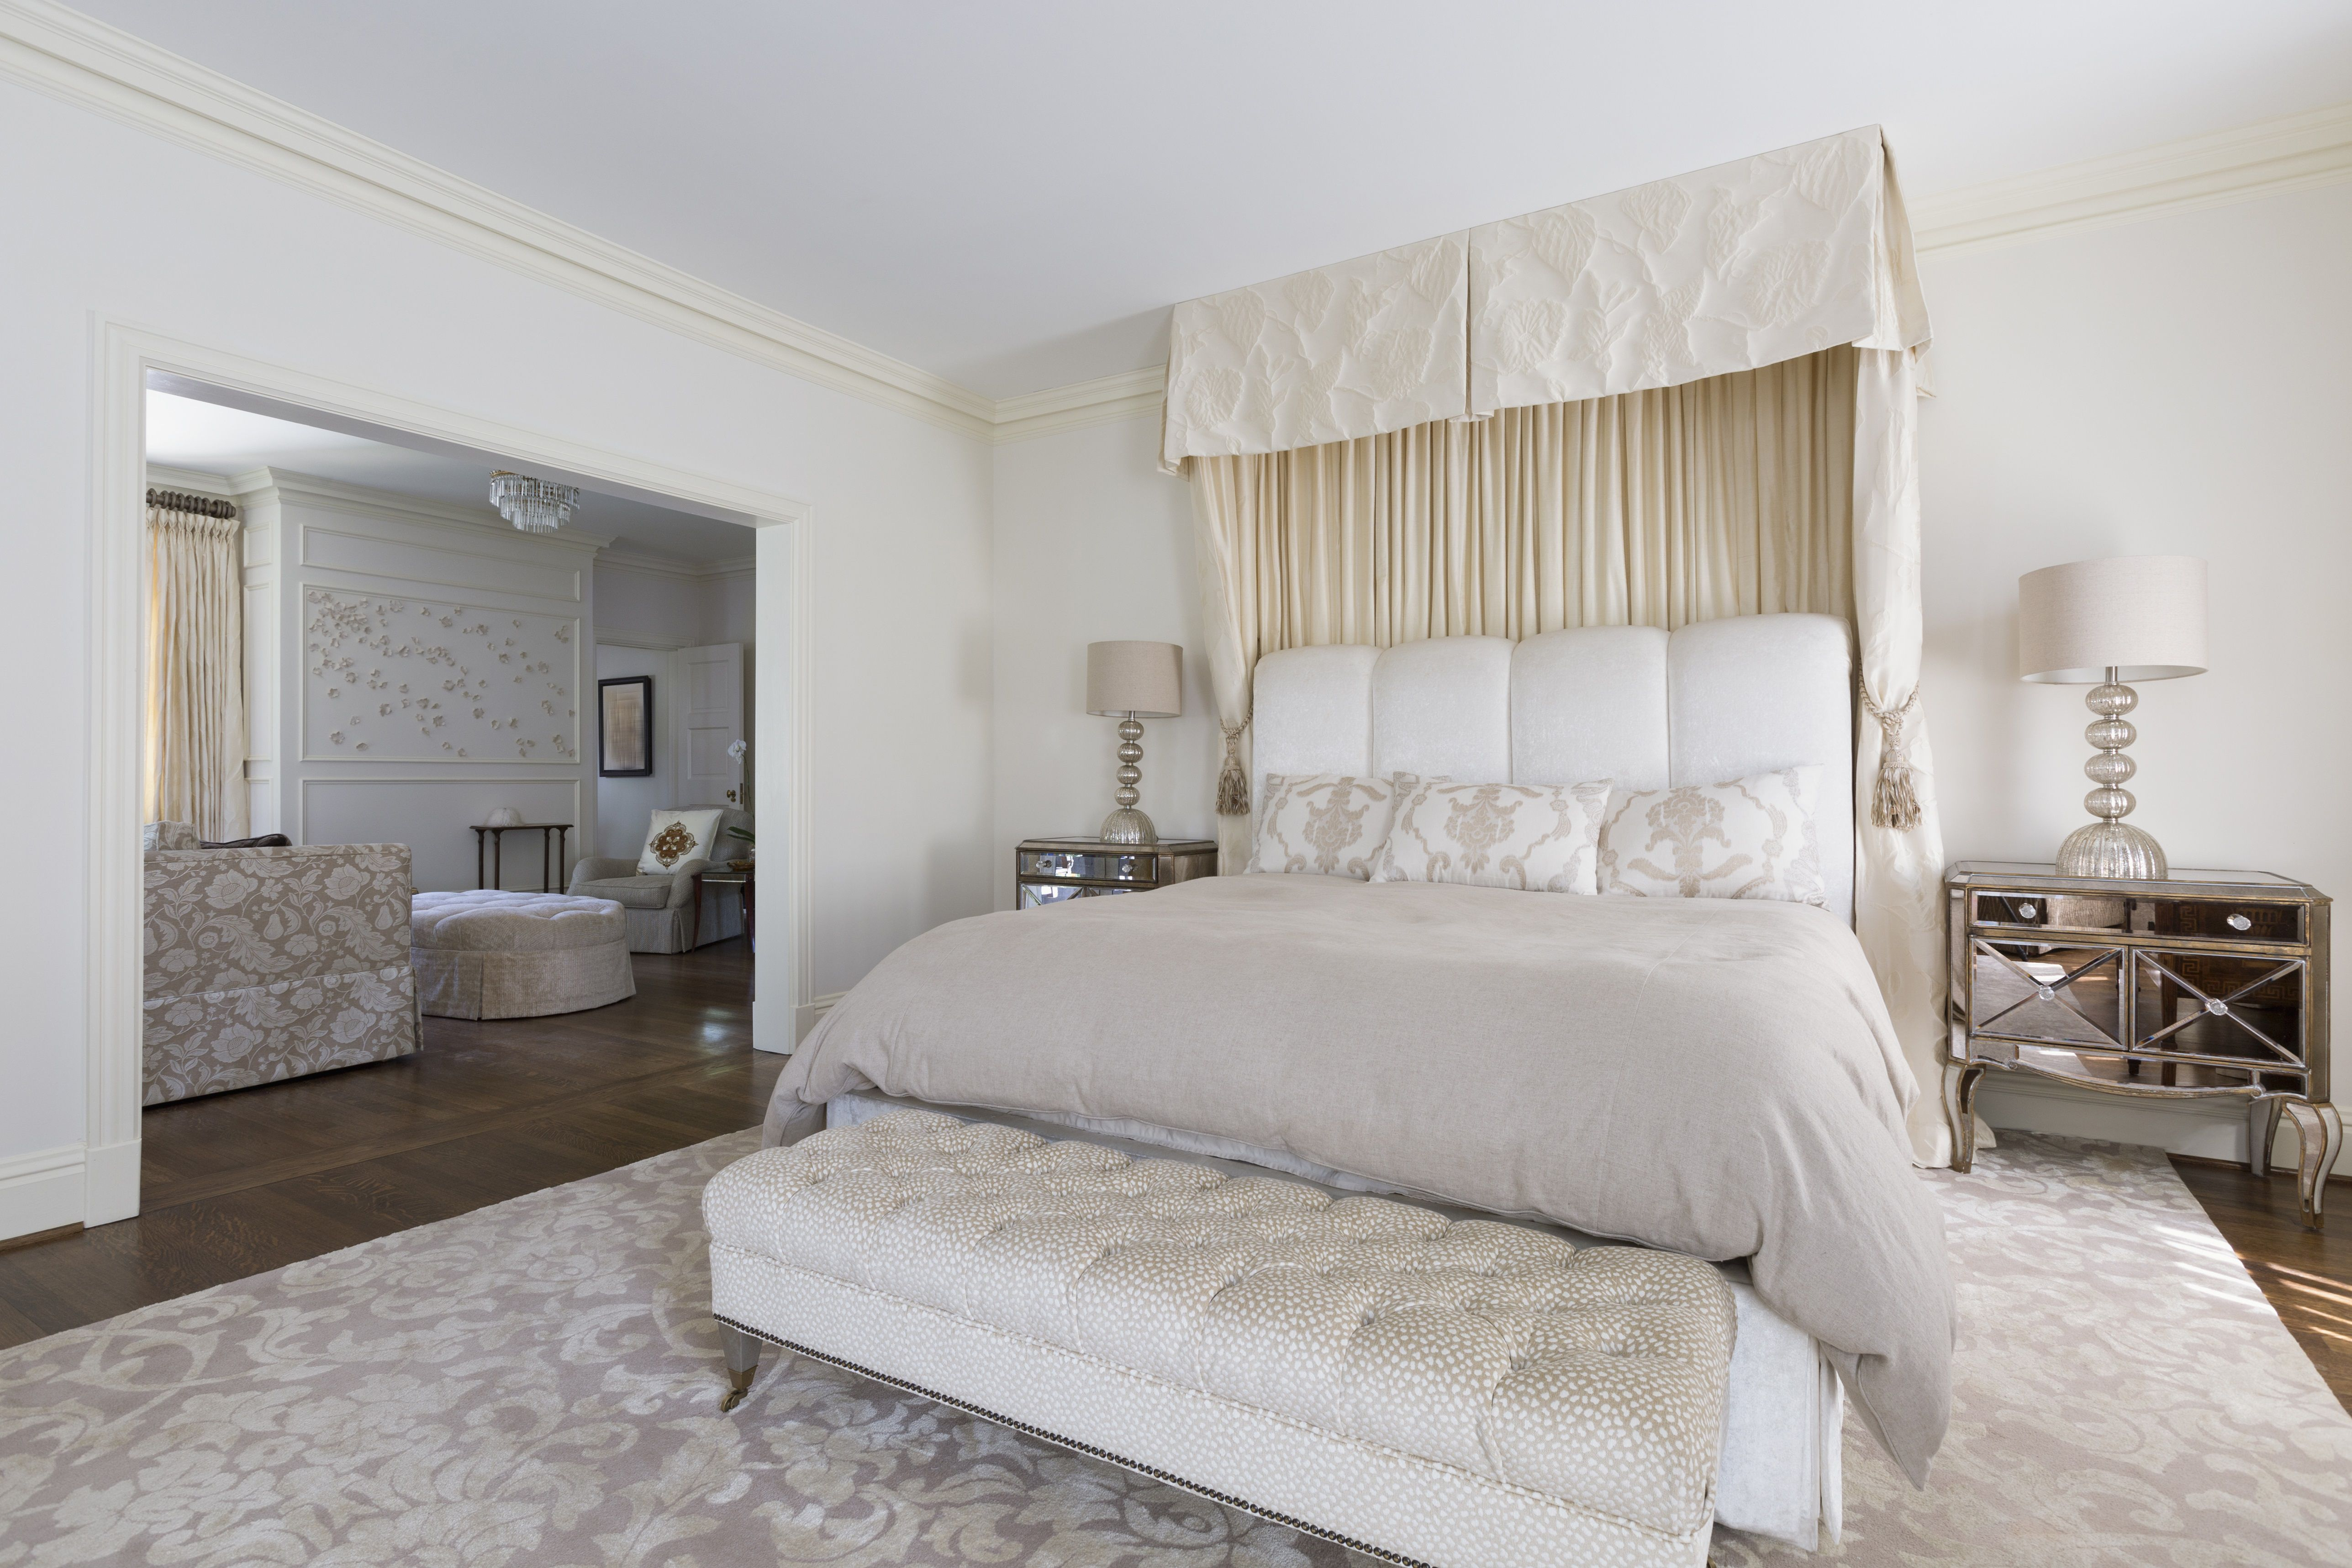 White Bedroom Decorating Ideas on white bedroom dressers, white bedroom decor ideas, white bedroom decoration, white bedroom doors, white master bedroom, white bedroom walls, white bedroom curtains, white bedroom sets, dining table decorating, white on white bedroom, white bedroom wallpaper, white bedroom style, white bedroom winter, white bedroom color, house beautiful decorating, white modern bedroom, white bedroom inspiration, white bedroom painting, white bedroom paint, dining room decorating,